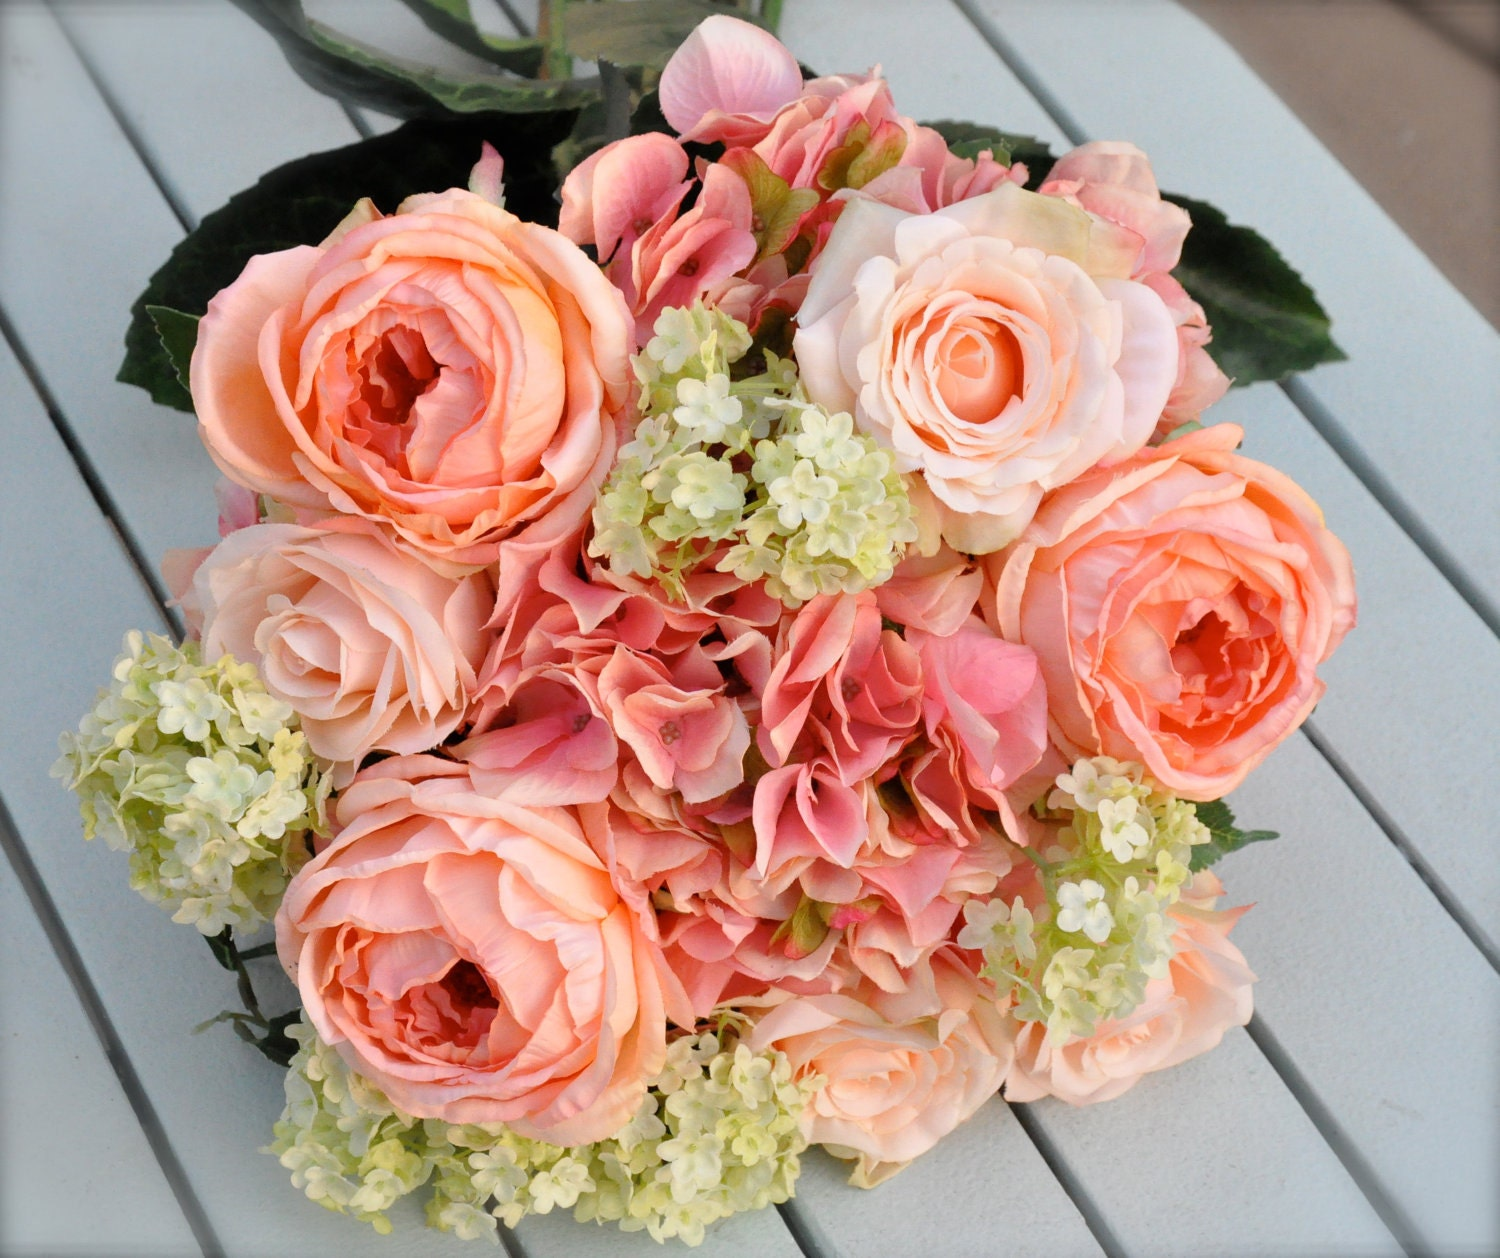 Silk wedding bouquet wedding bouquet keepsake bouquet - Rosas color coral ...